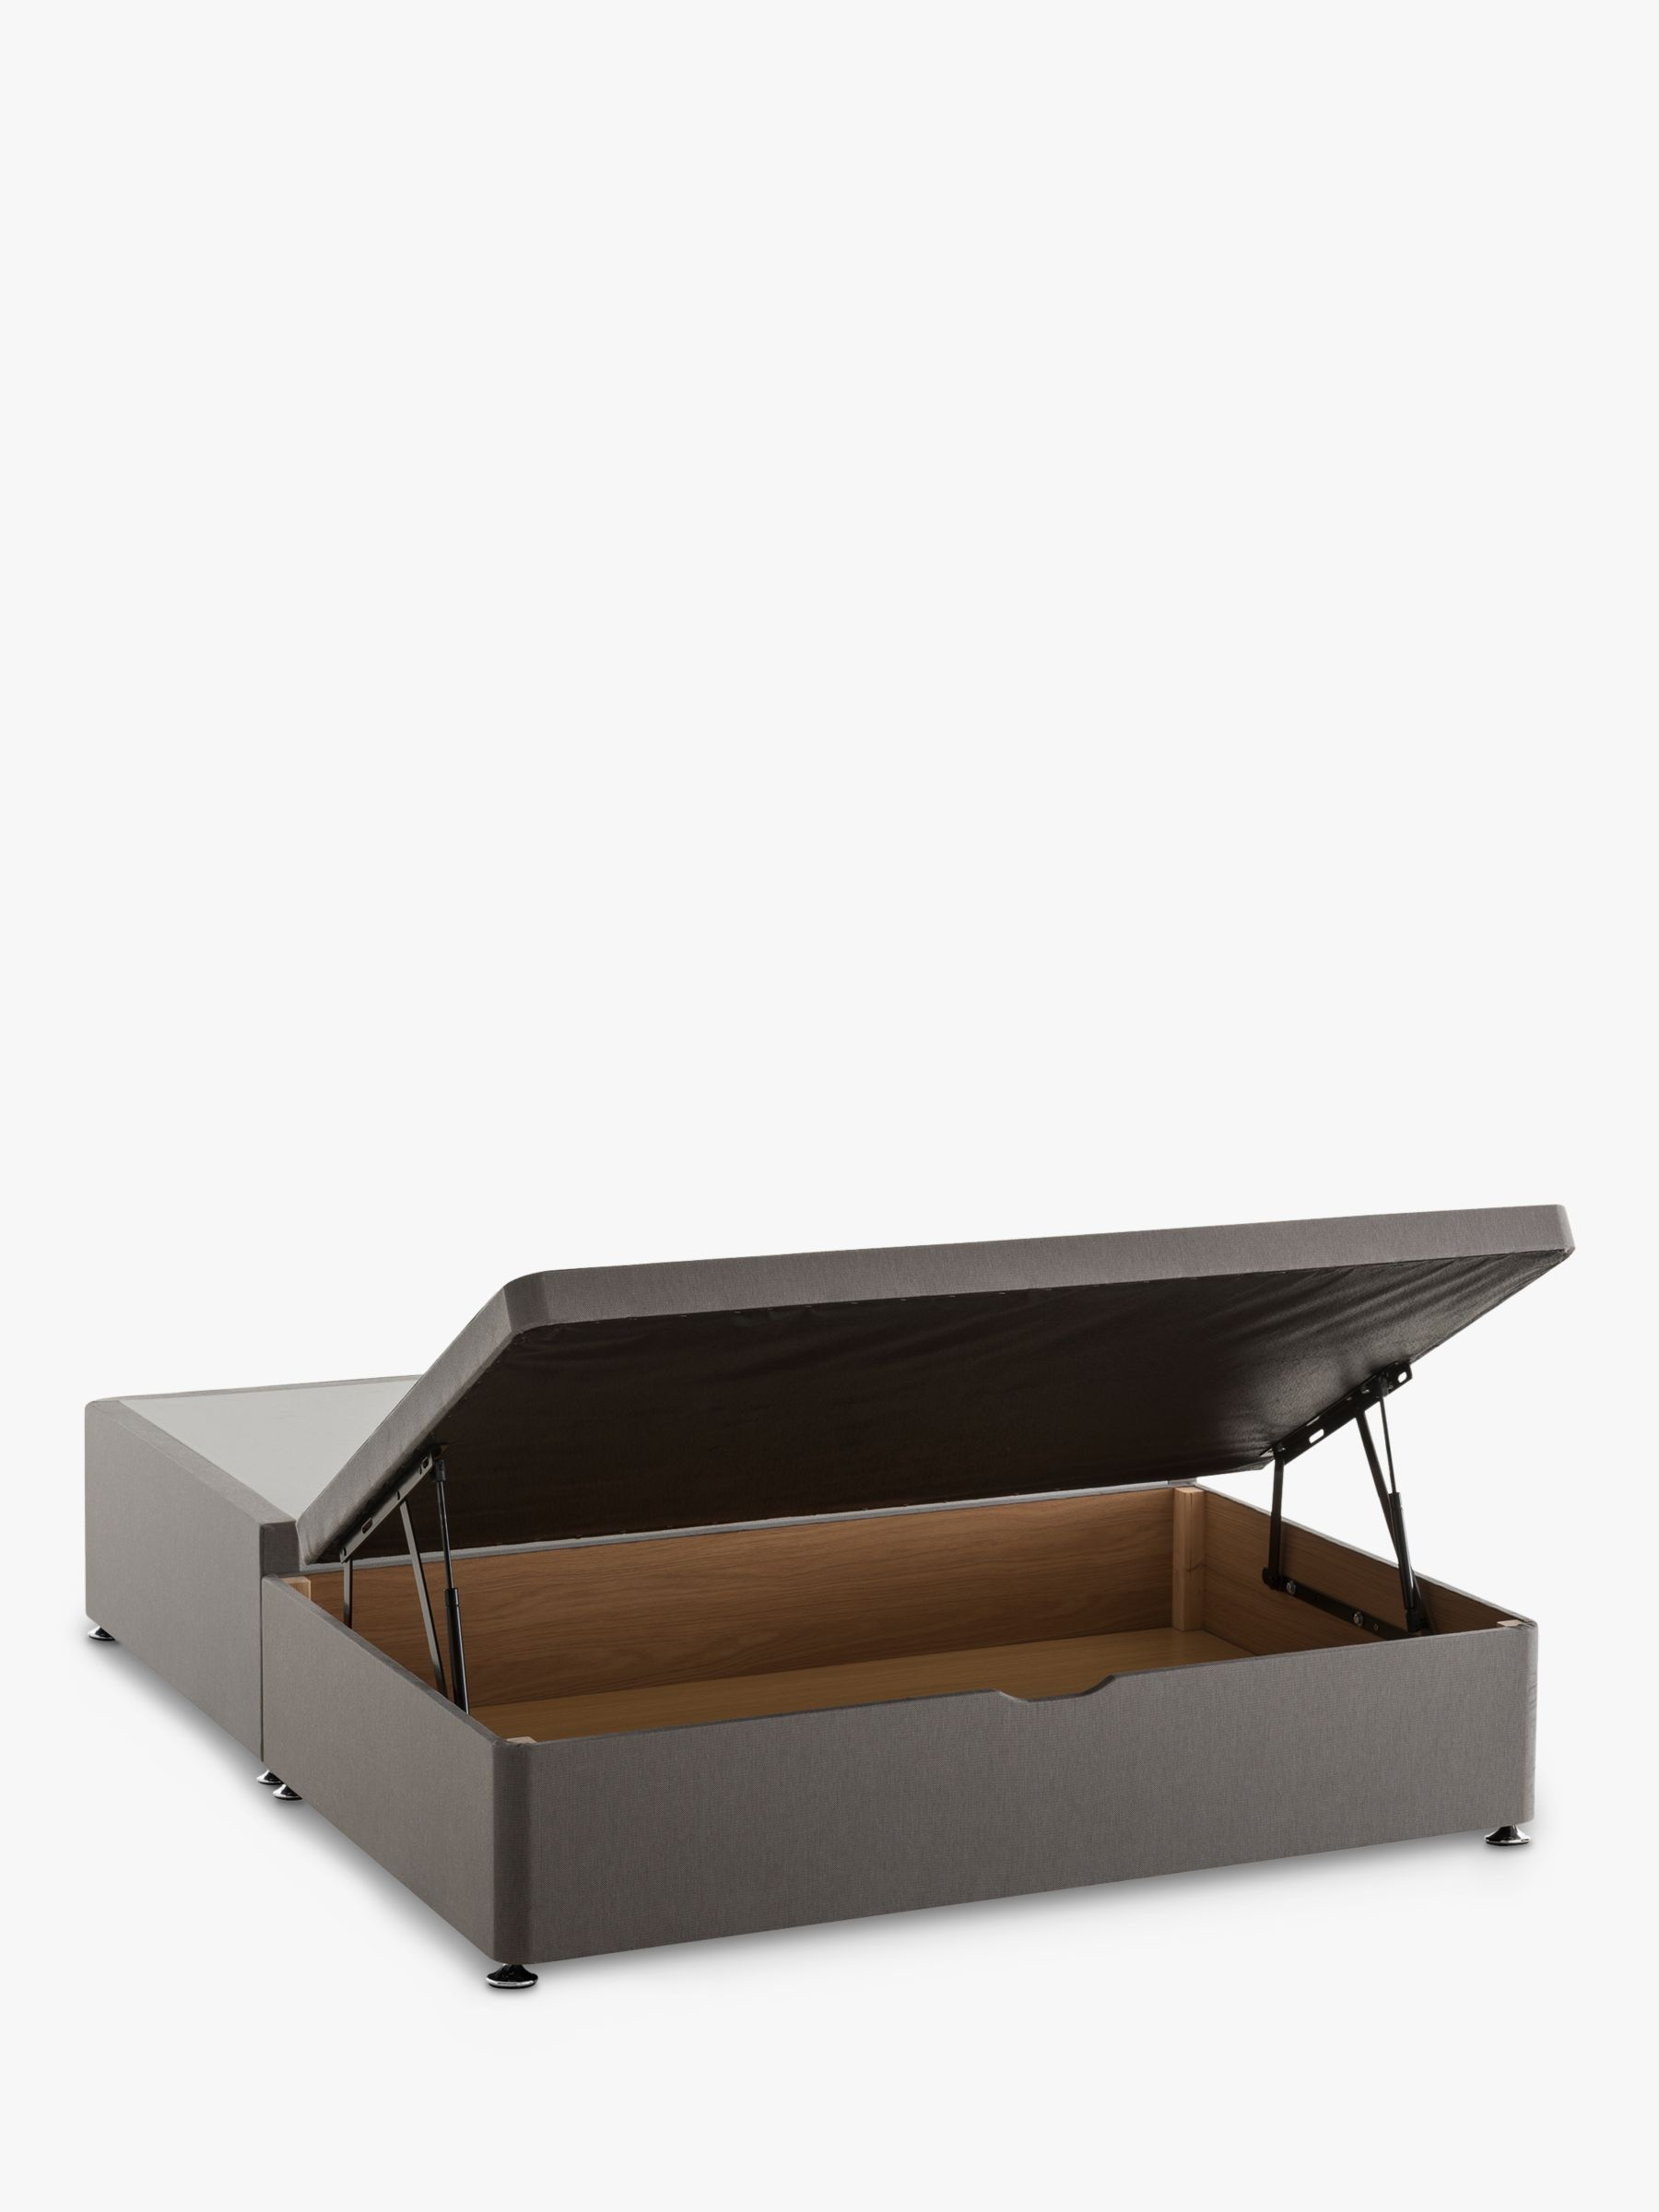 Picture of: Silentnight End Divan Ottoman Storage Bed King Size At John Lewis Partners